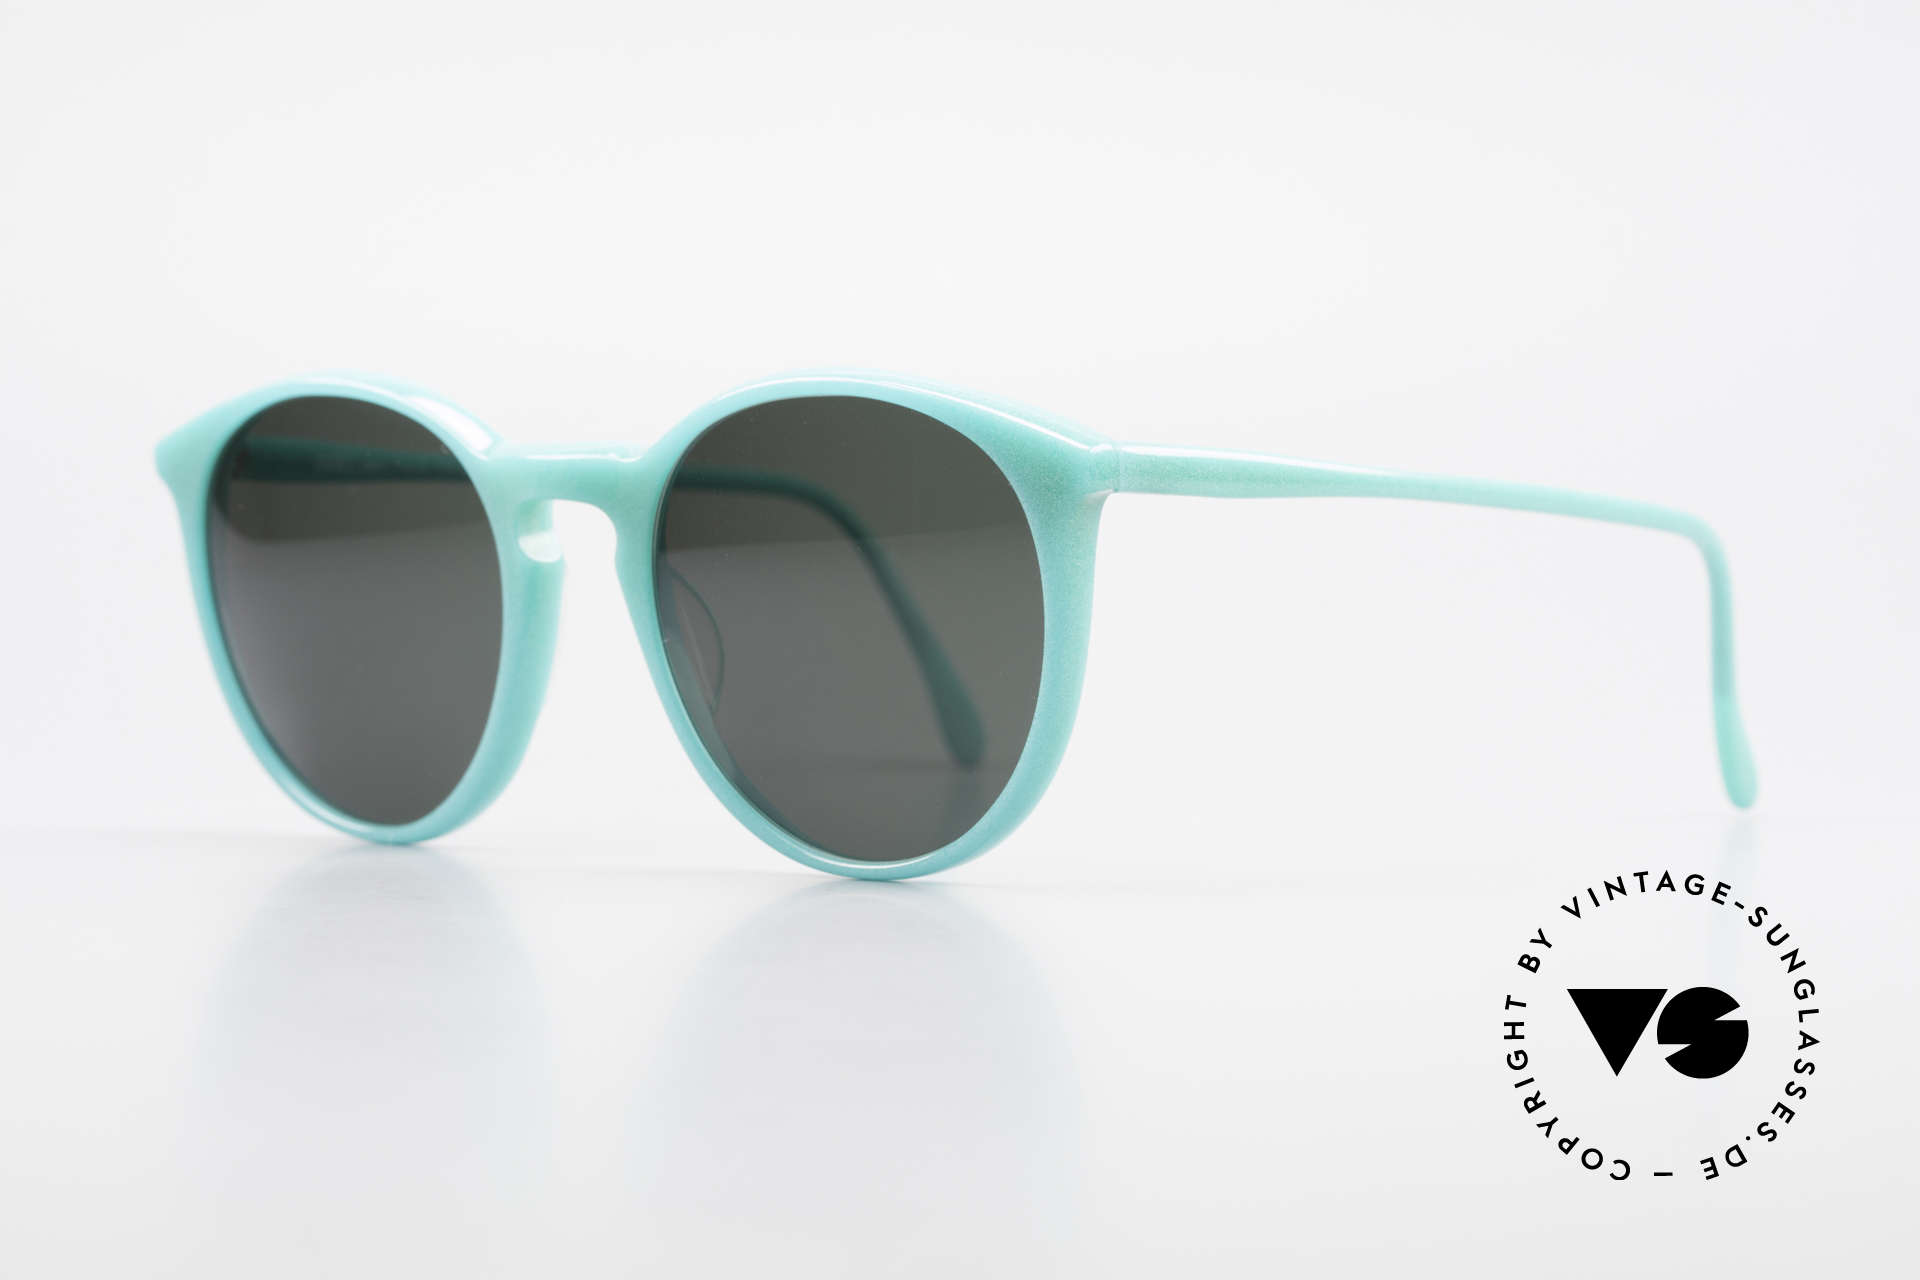 Alain Mikli 901 / 079 Green Pearl Panto Sunglasses, interesting frame color: shines like a green pearl, Made for Men and Women